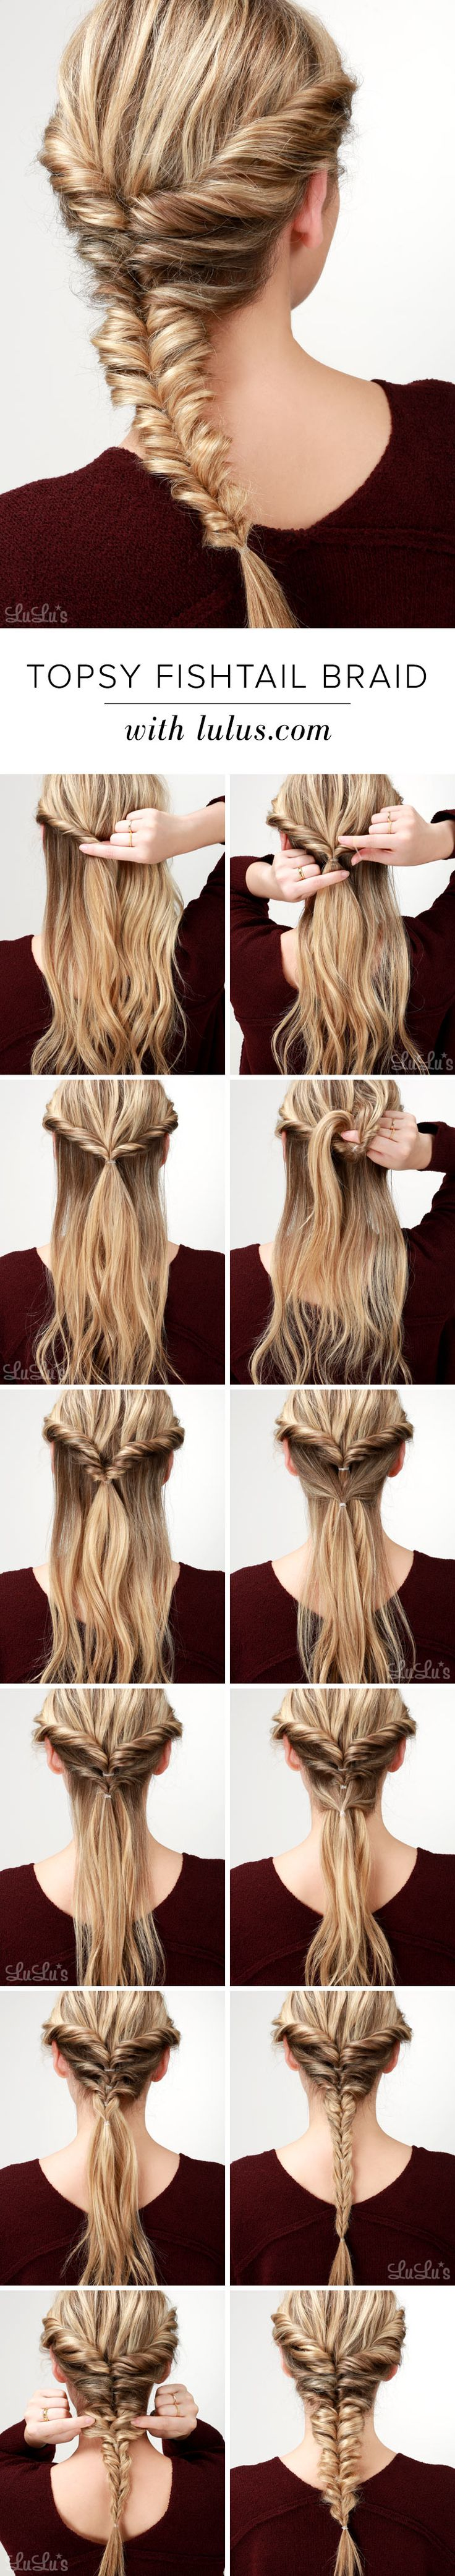 Lulus How To Topsy Fishtail Braid Tutorial